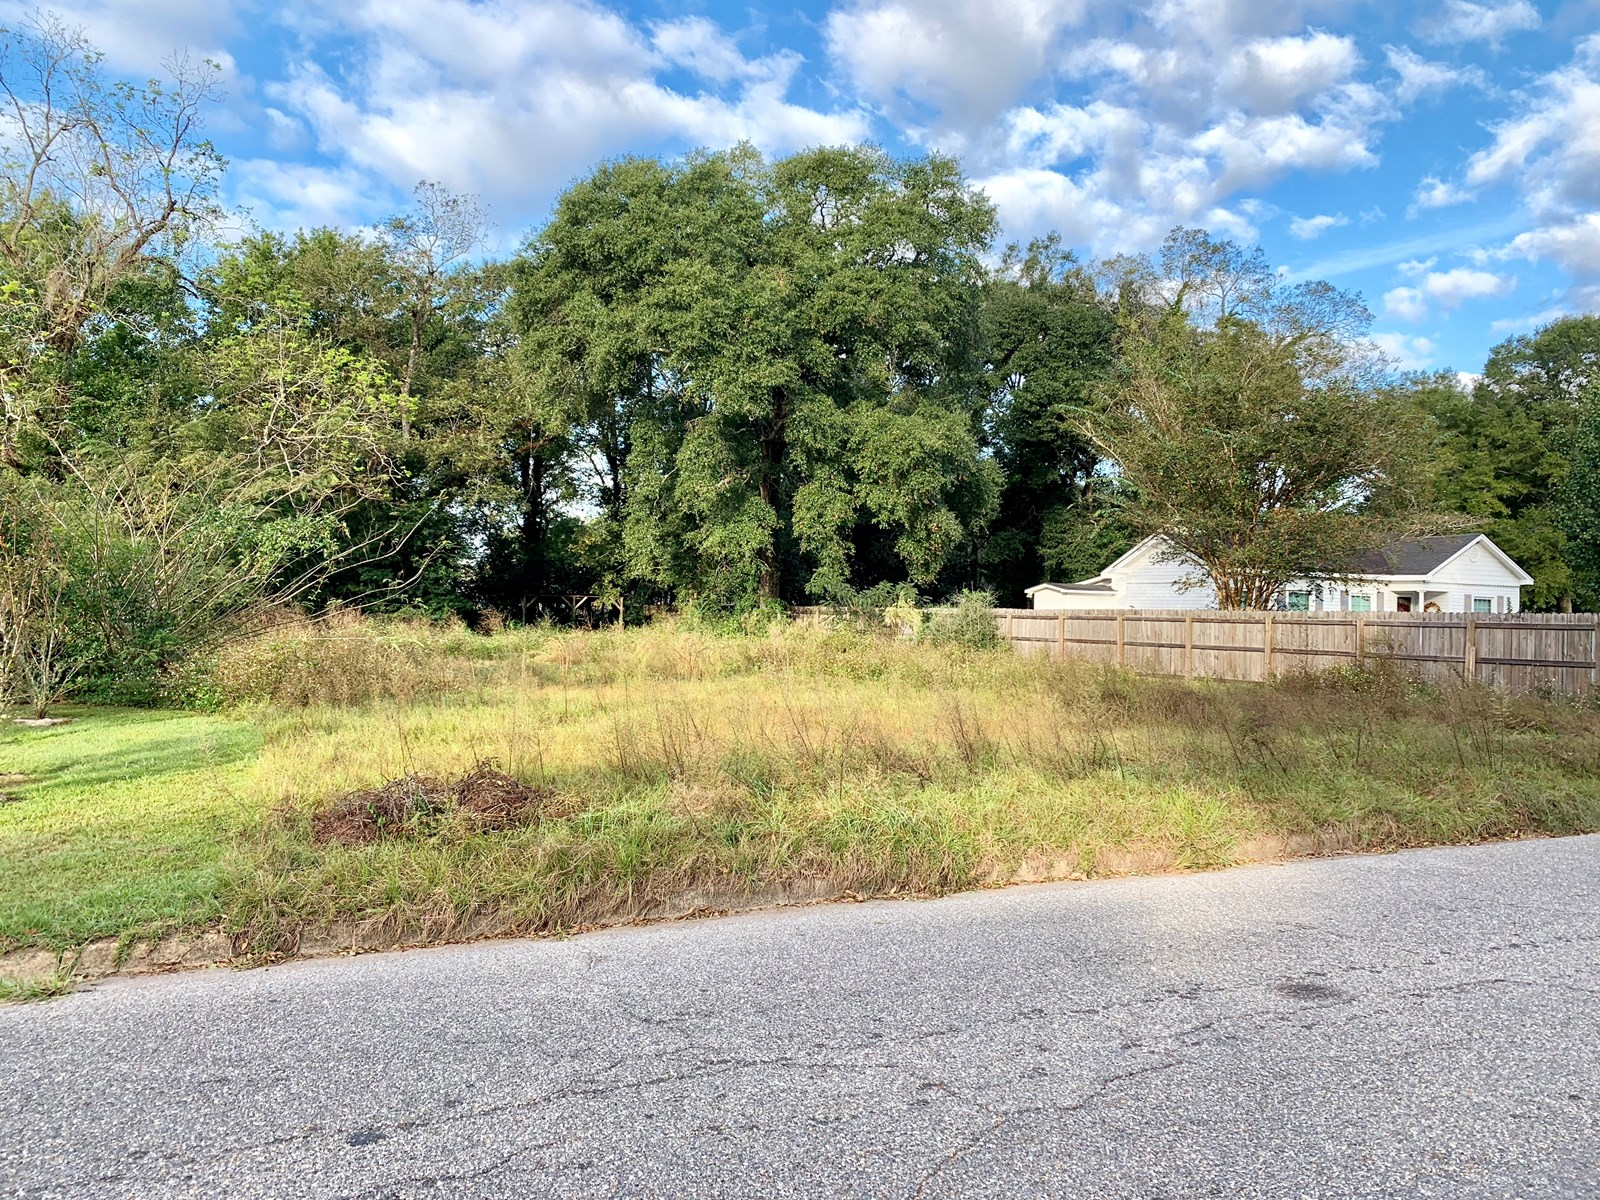 80 x 160 LOT PM S ACADEMY STREET IN GENEVA, AL FOR SALE